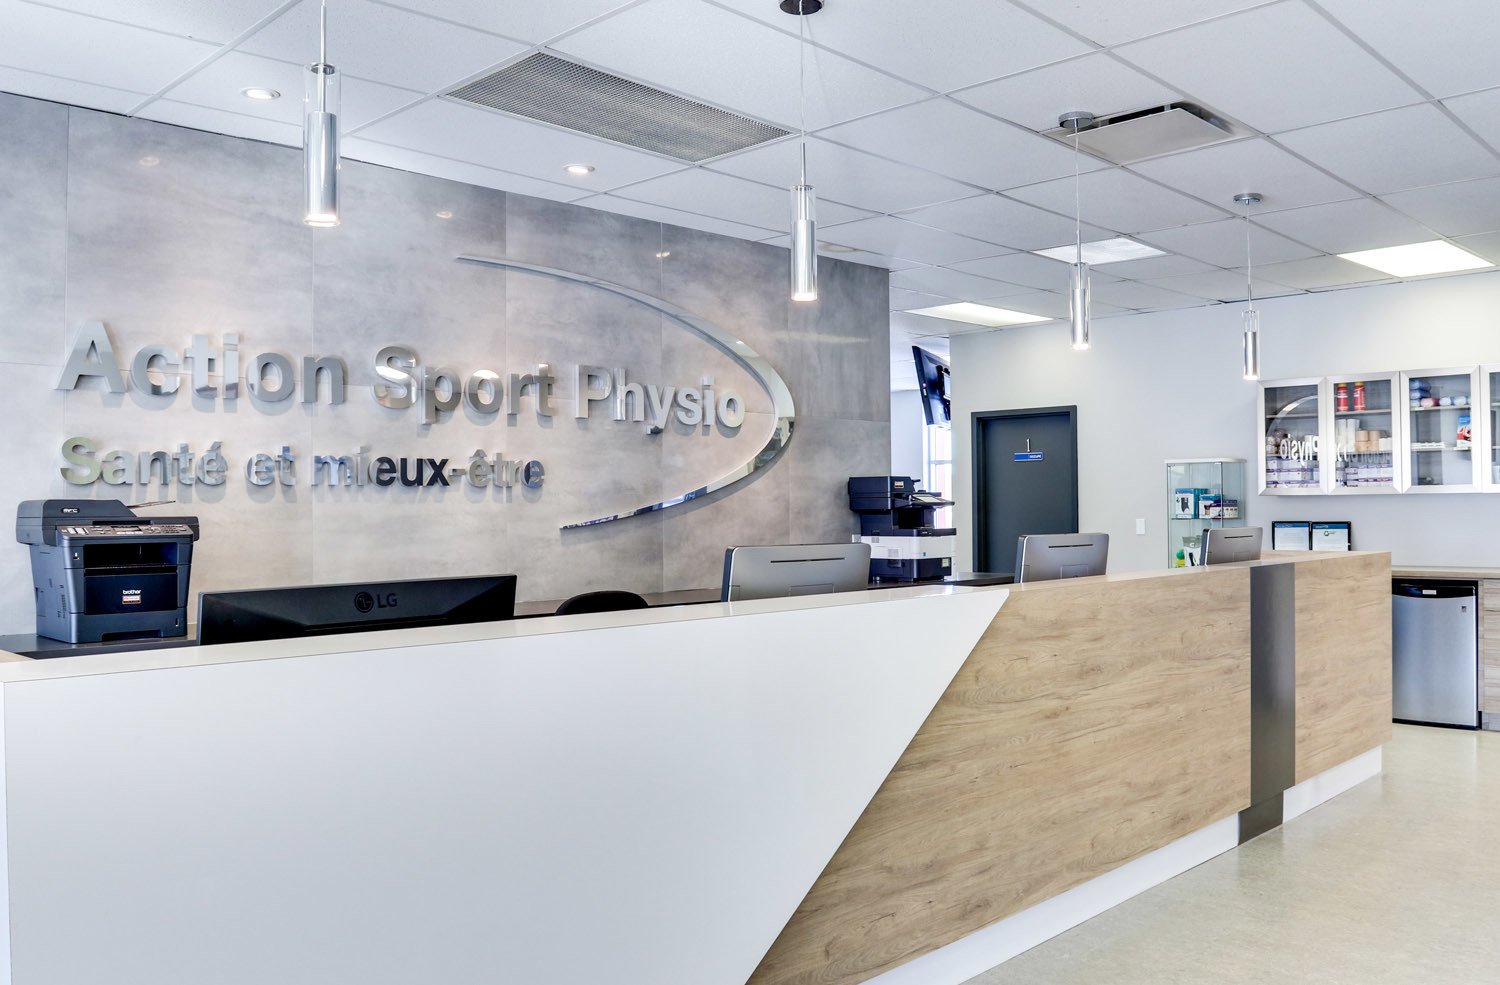 Picture of the Saint-Jérôme Action Sports Physiotherapy Clinic. You can book online or call us at 450 432-0422. We offer physiotherapy, kinesiology, osteopathy and many more professional services.